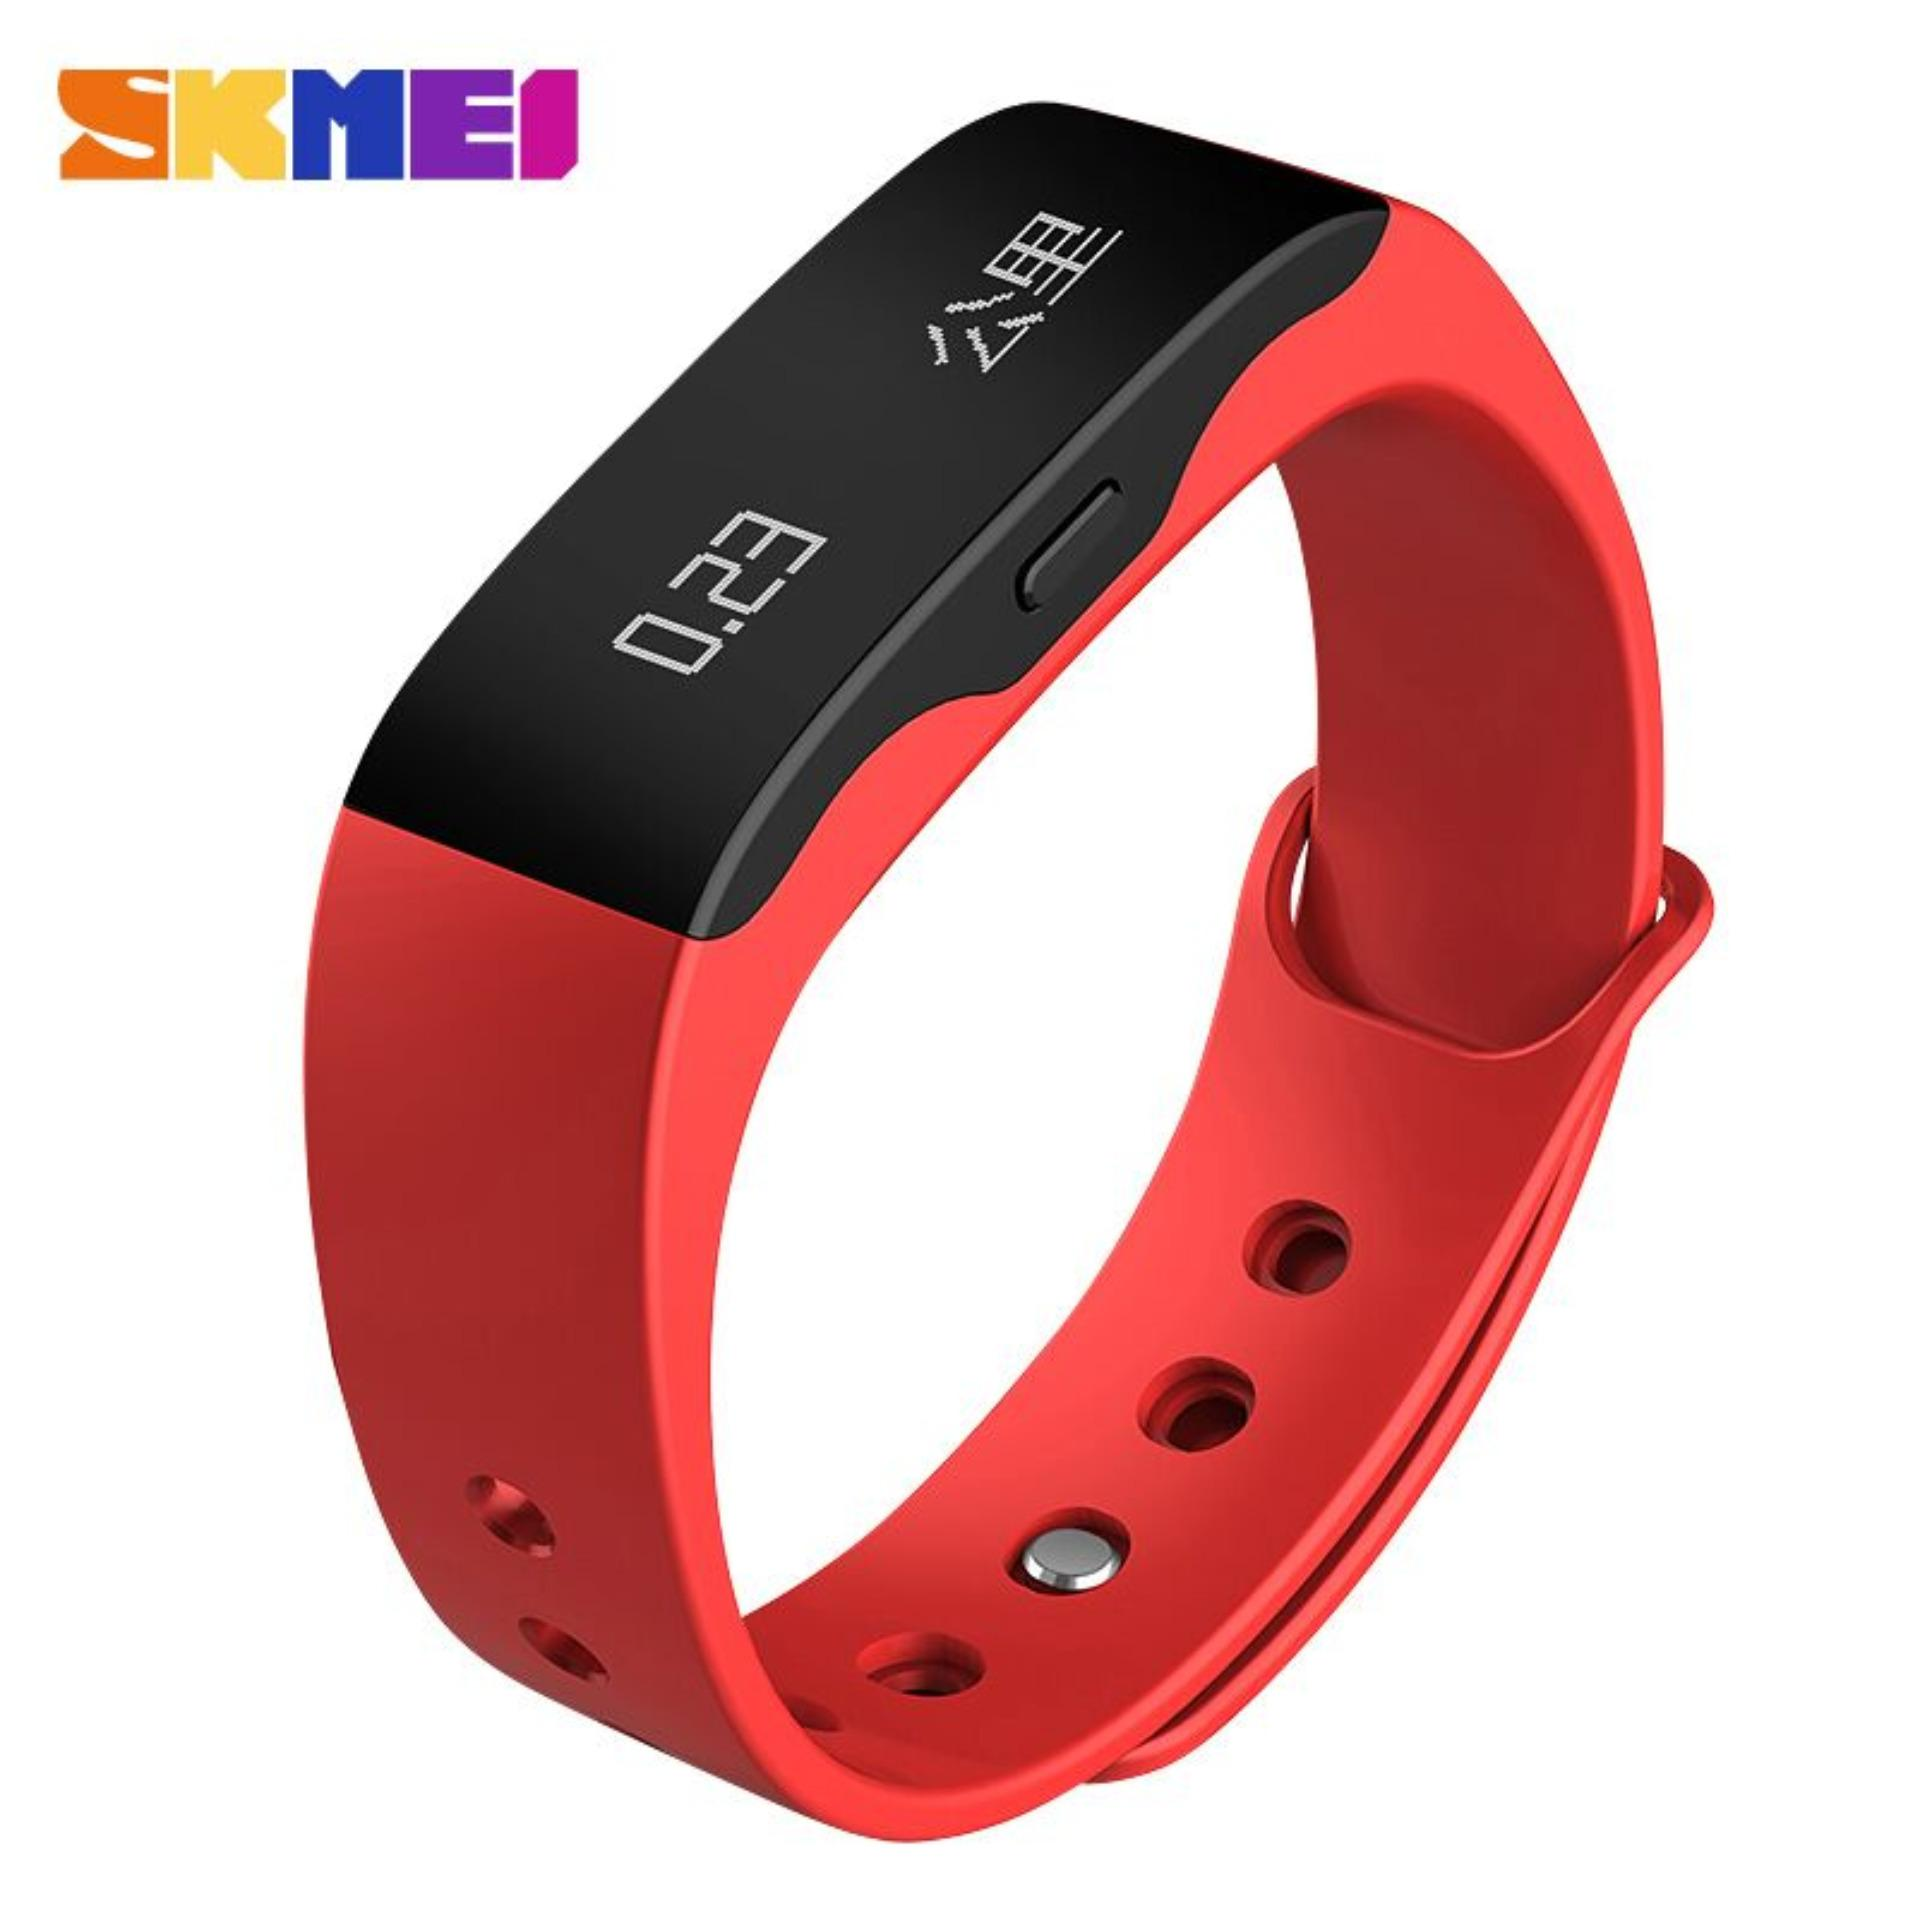 Harga Skmei Jam Tangan Oled Gelang Smartwatch Fitness Notification L28T Branded